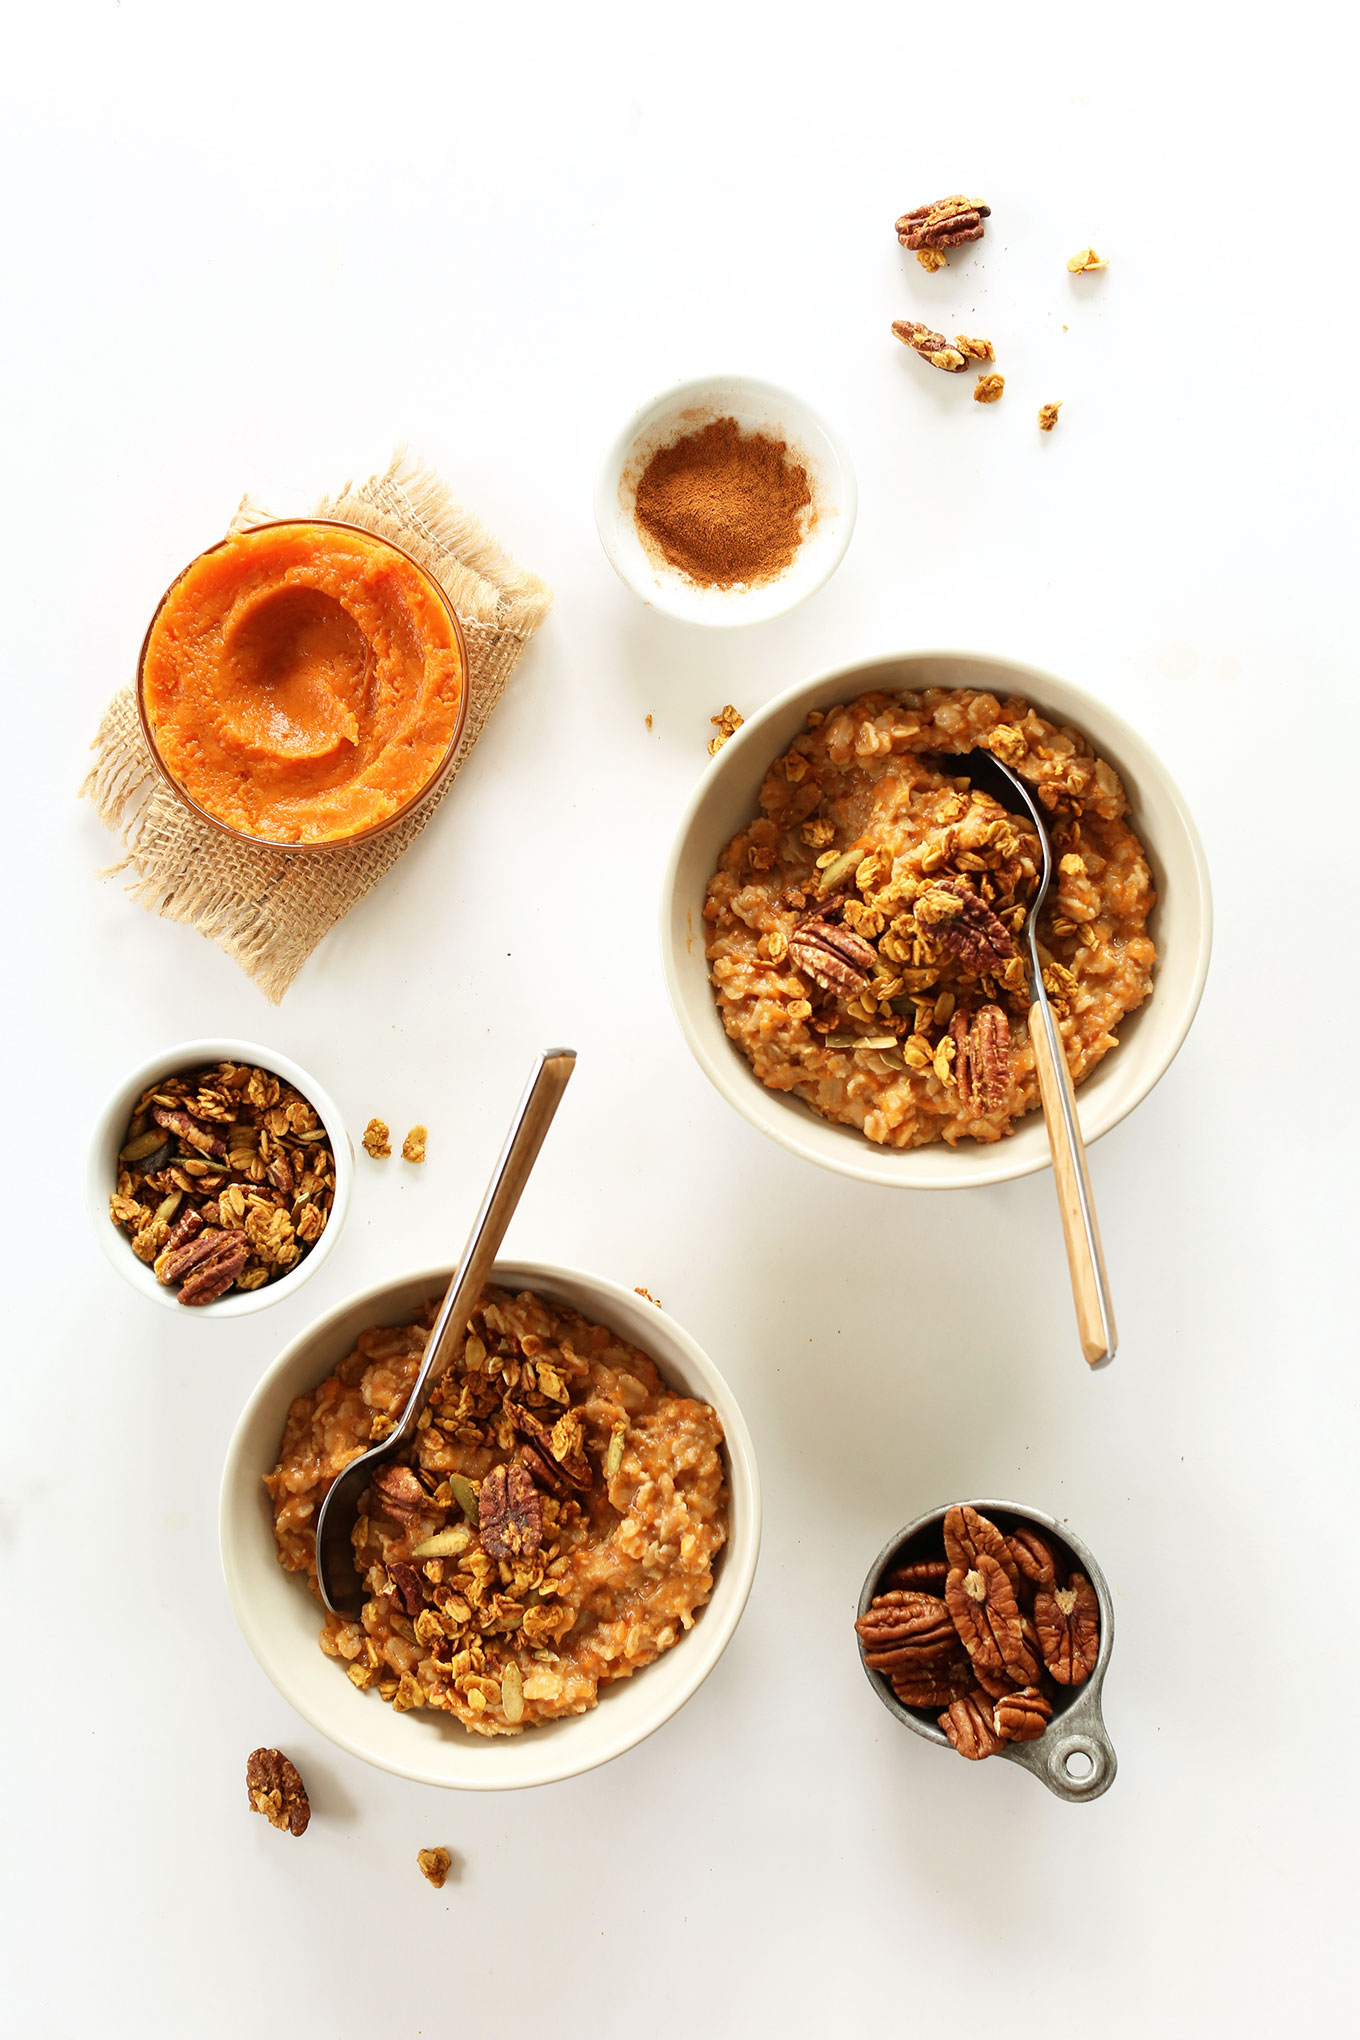 DELICIOUS-Sweet-Potato-Pie-Oats!-10-minutes,-healthy,-satisfying-and-perfect-for-chilly-fall-mornings #vegan #glutenfree #minimalistbaker